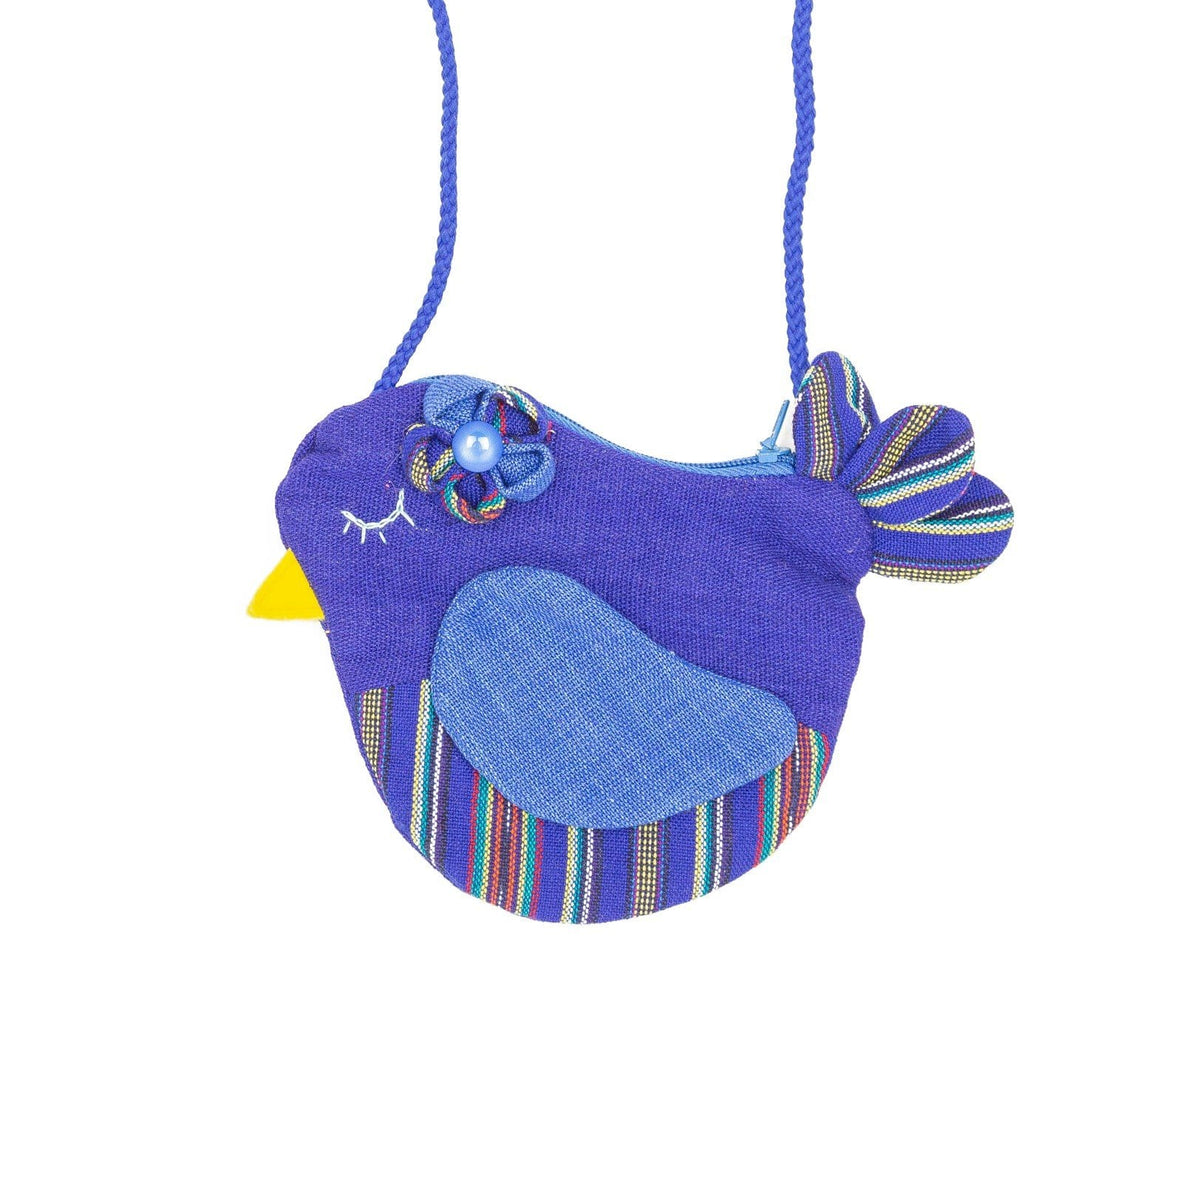 Fair Trade Birdie Purse Blue ?id=14031161131061